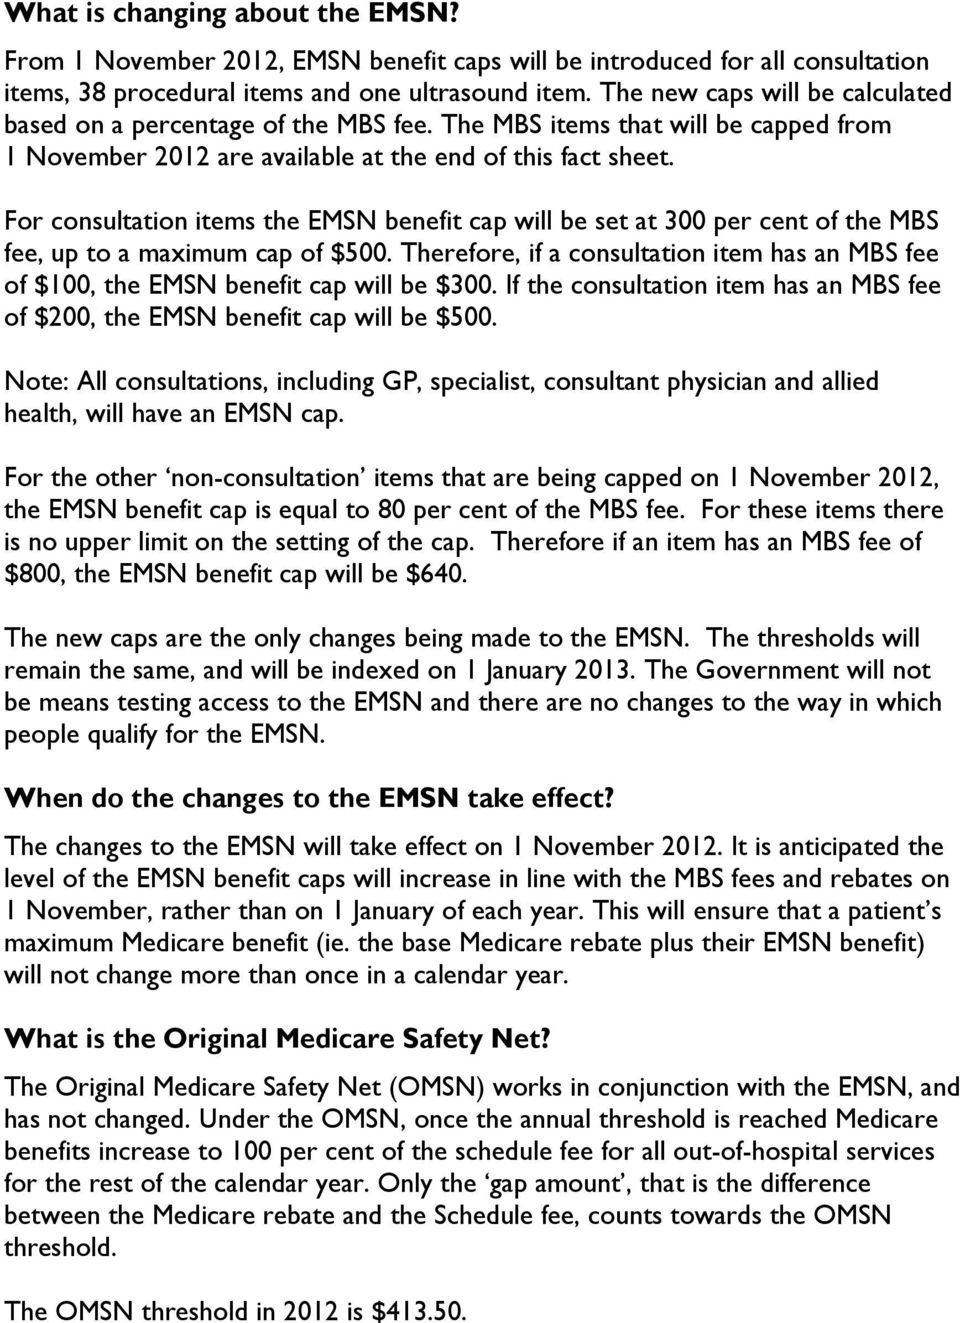 For consultation items the EMSN benefit cap will be set at 300 per cent of the MBS fee, up to a maximum cap of $500.